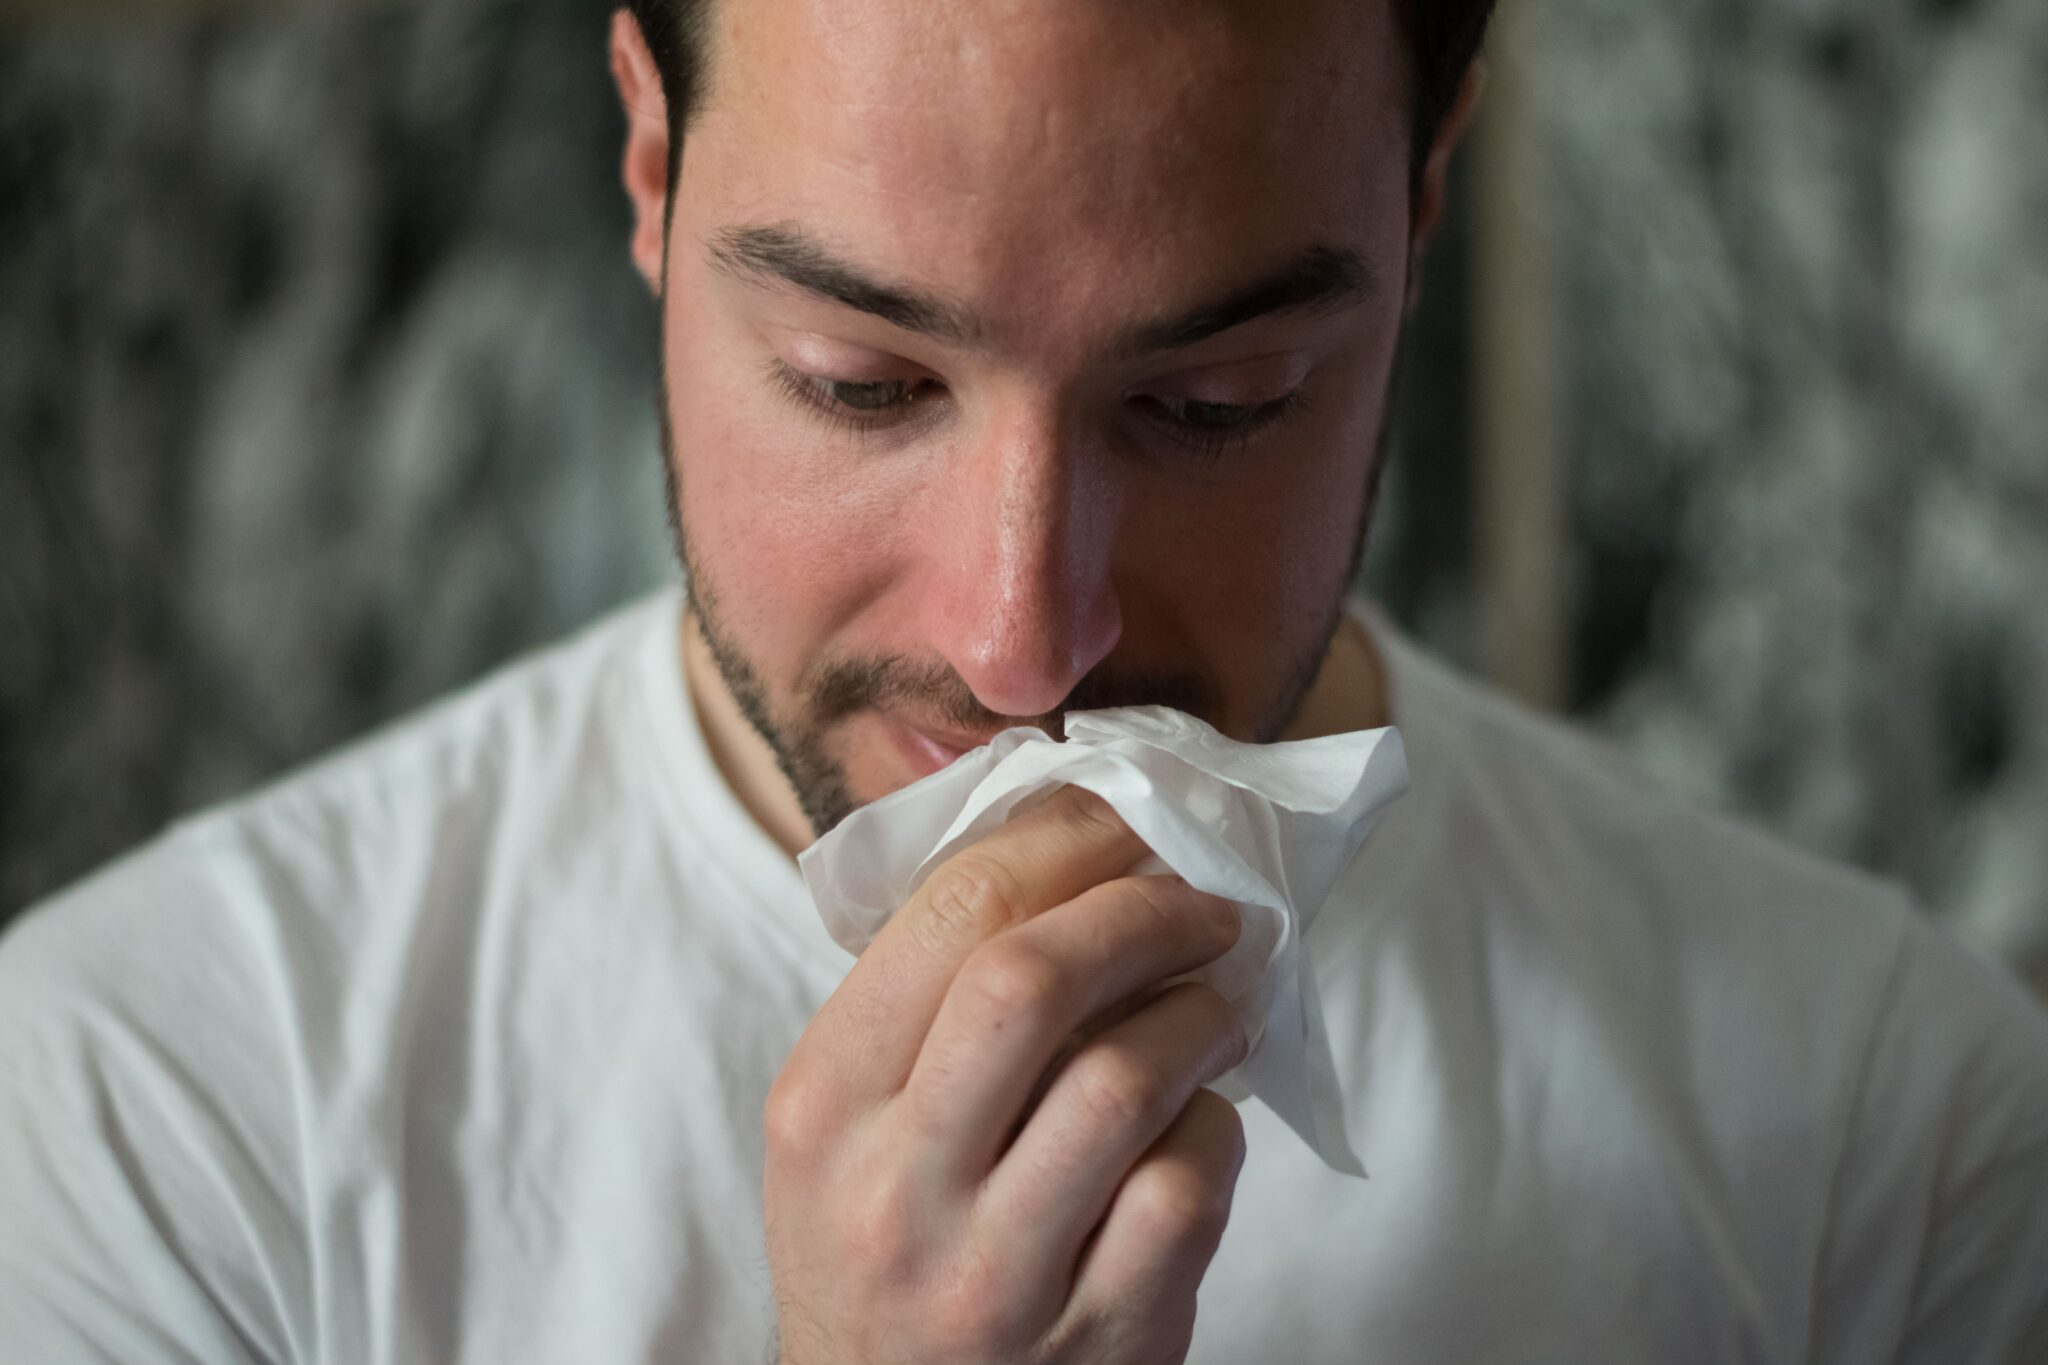 Sore throat and dry cough - Corona or an allergy to pollen?